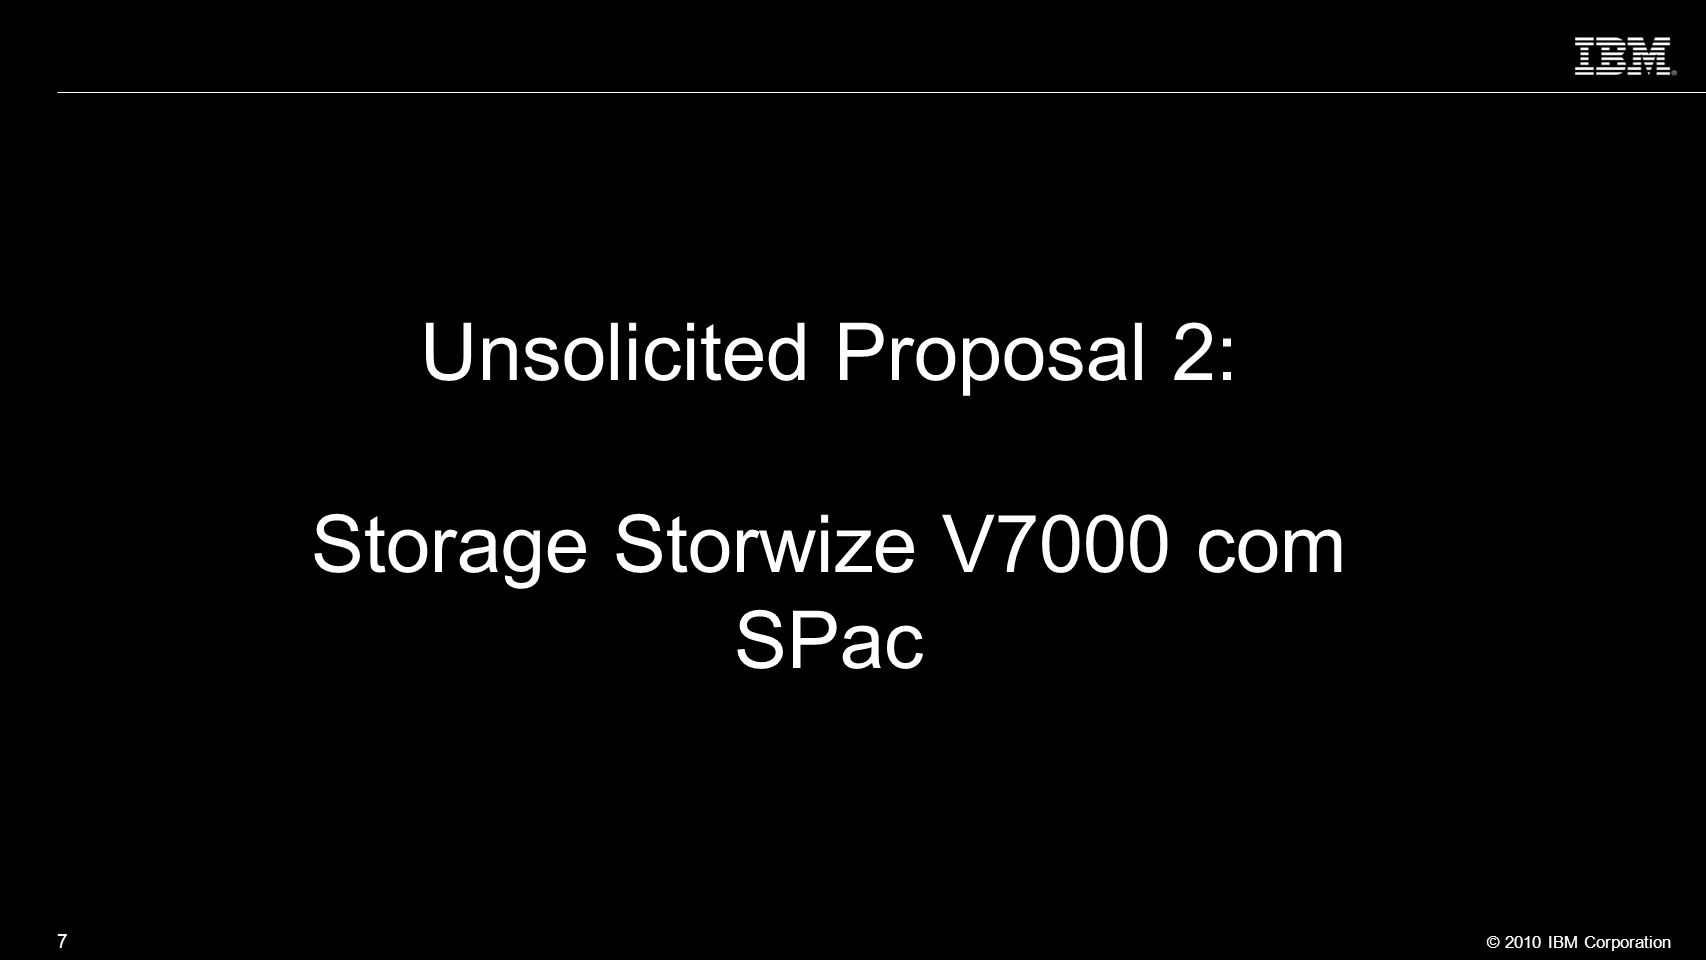 Unsolicited Proposal 2: Storage Storwize V7000 com SPac